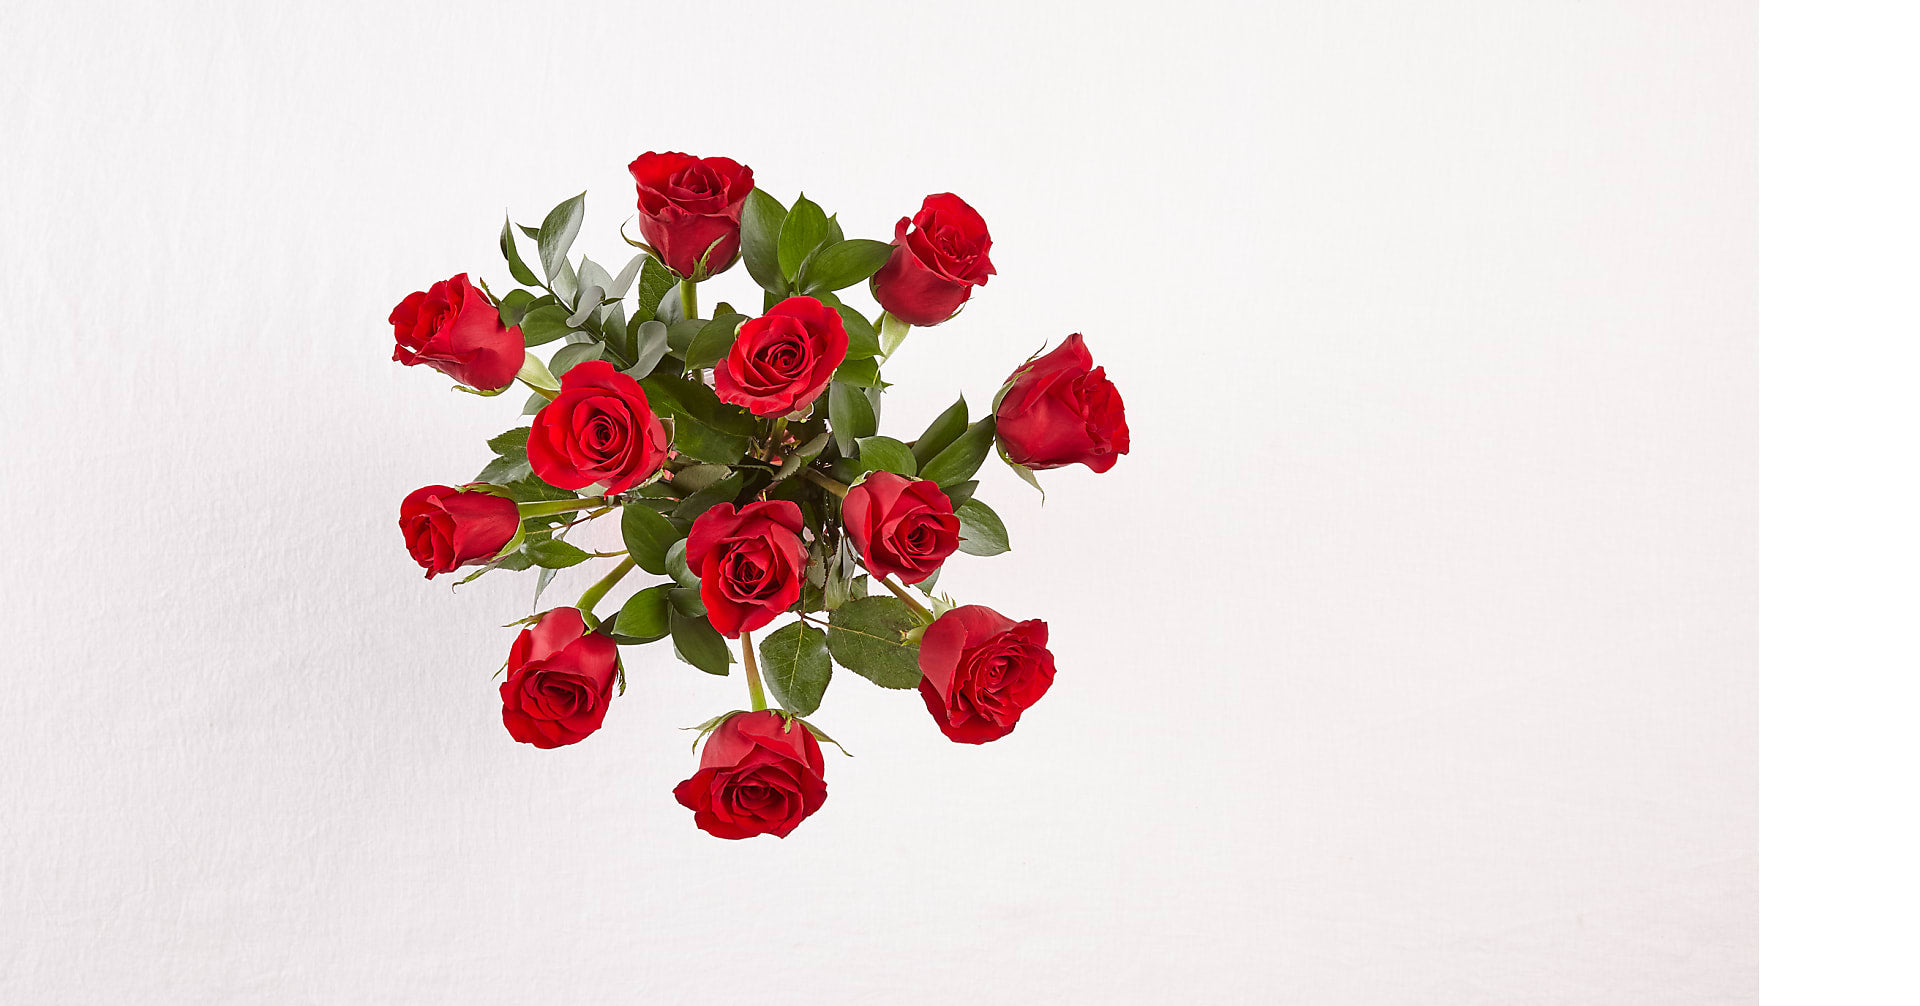 12 Red Roses with Glass Vase - Image 3 Of 4